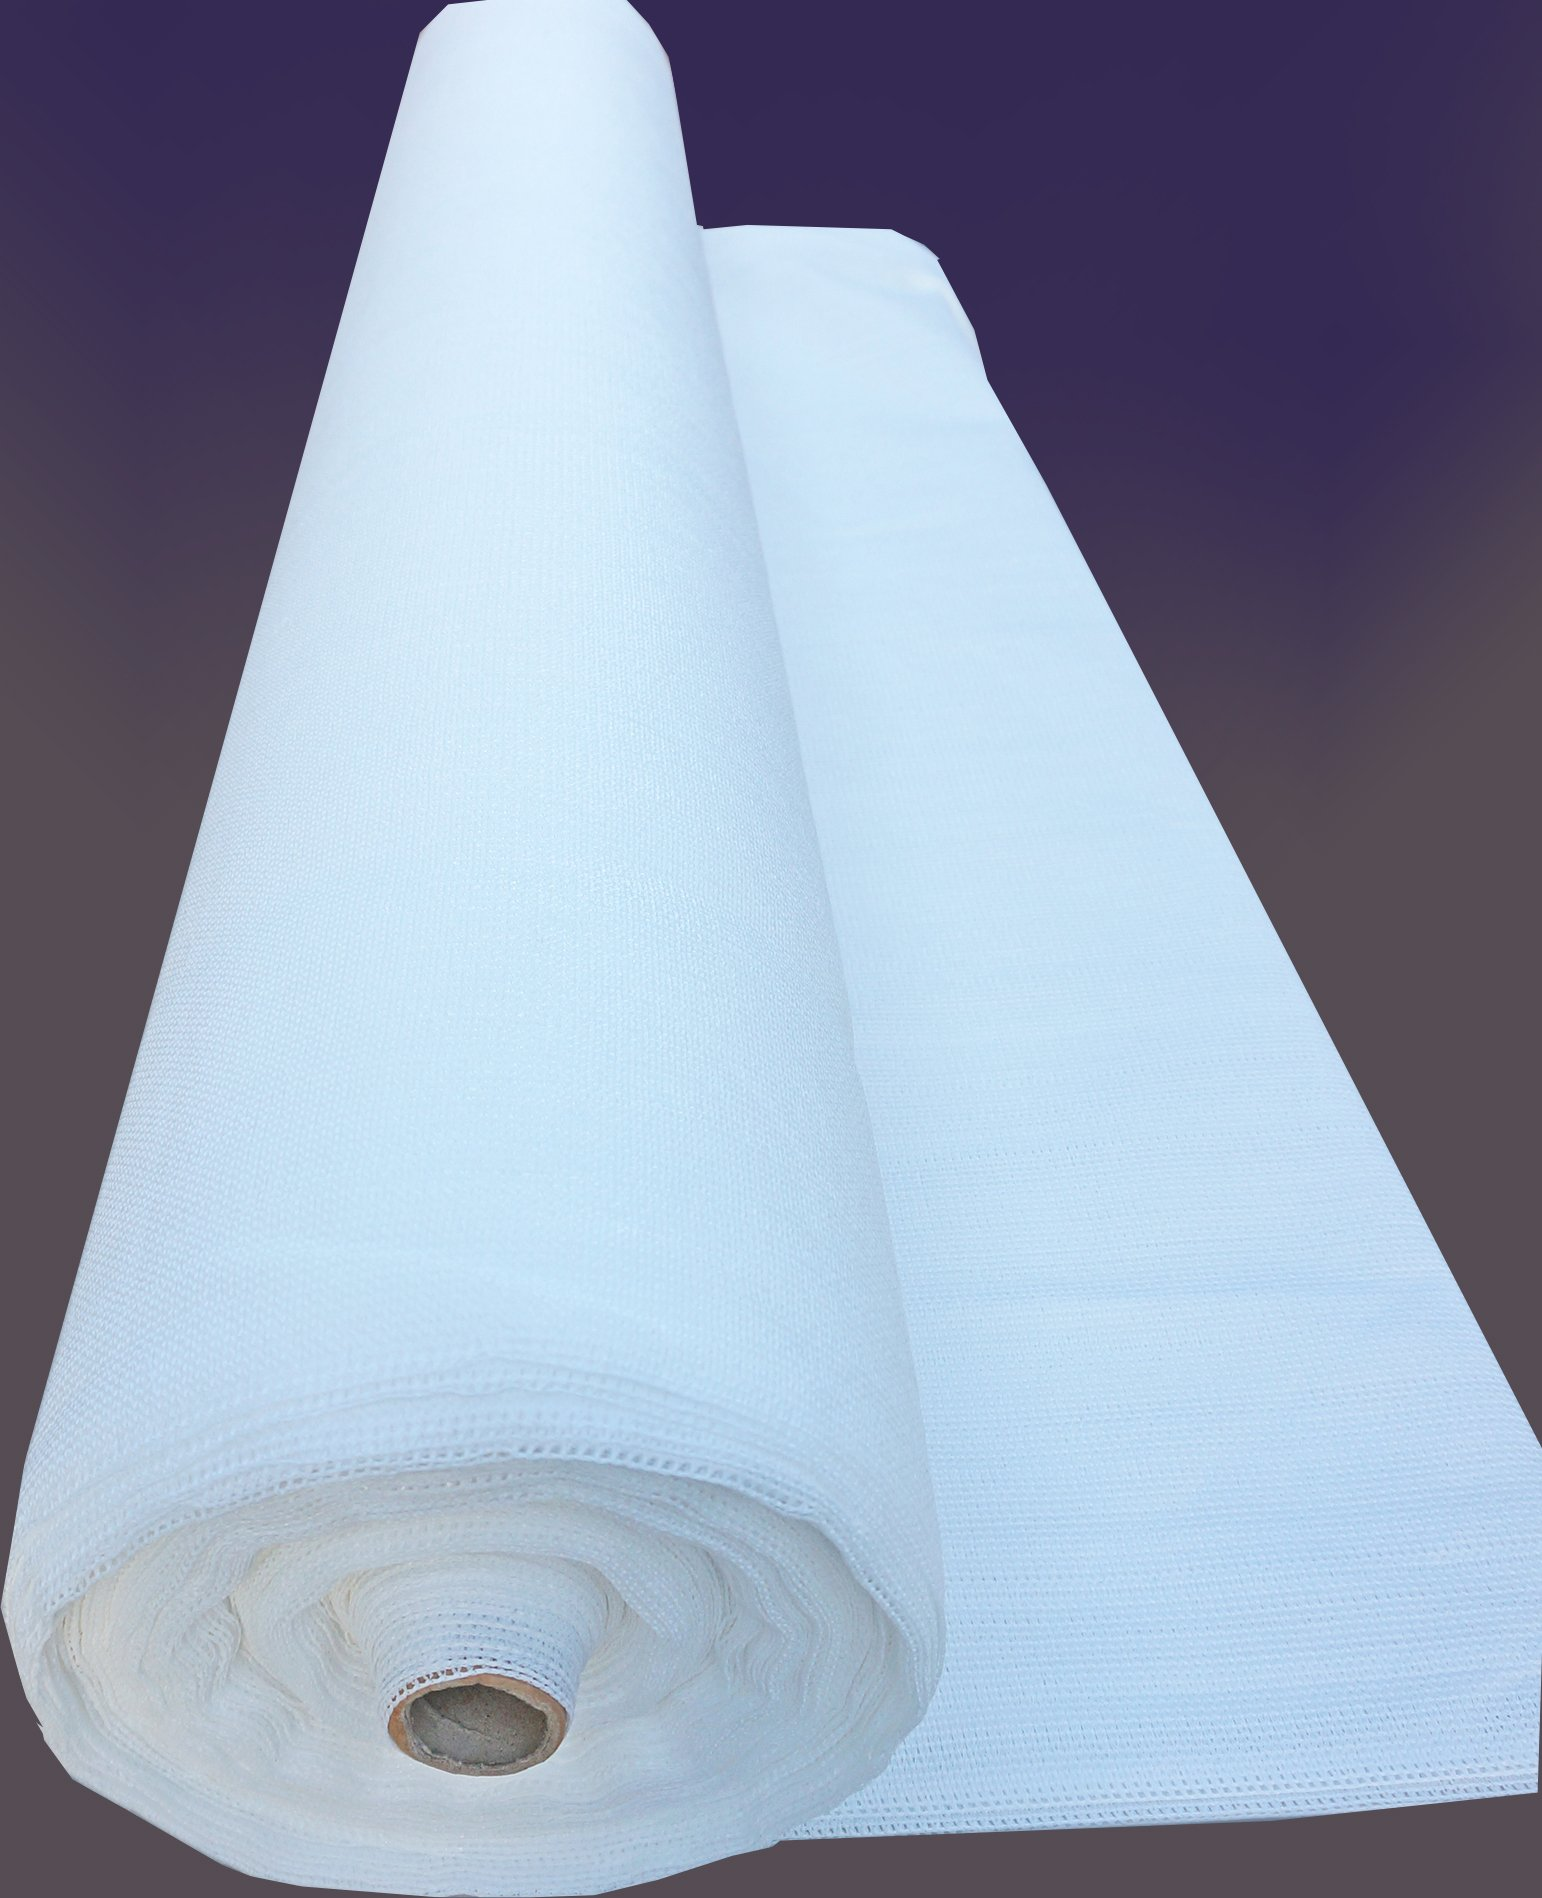 SHANS 90% UV Resistant Fabric Shade Cloth Pure White 20 By 50 ft With Clips Free